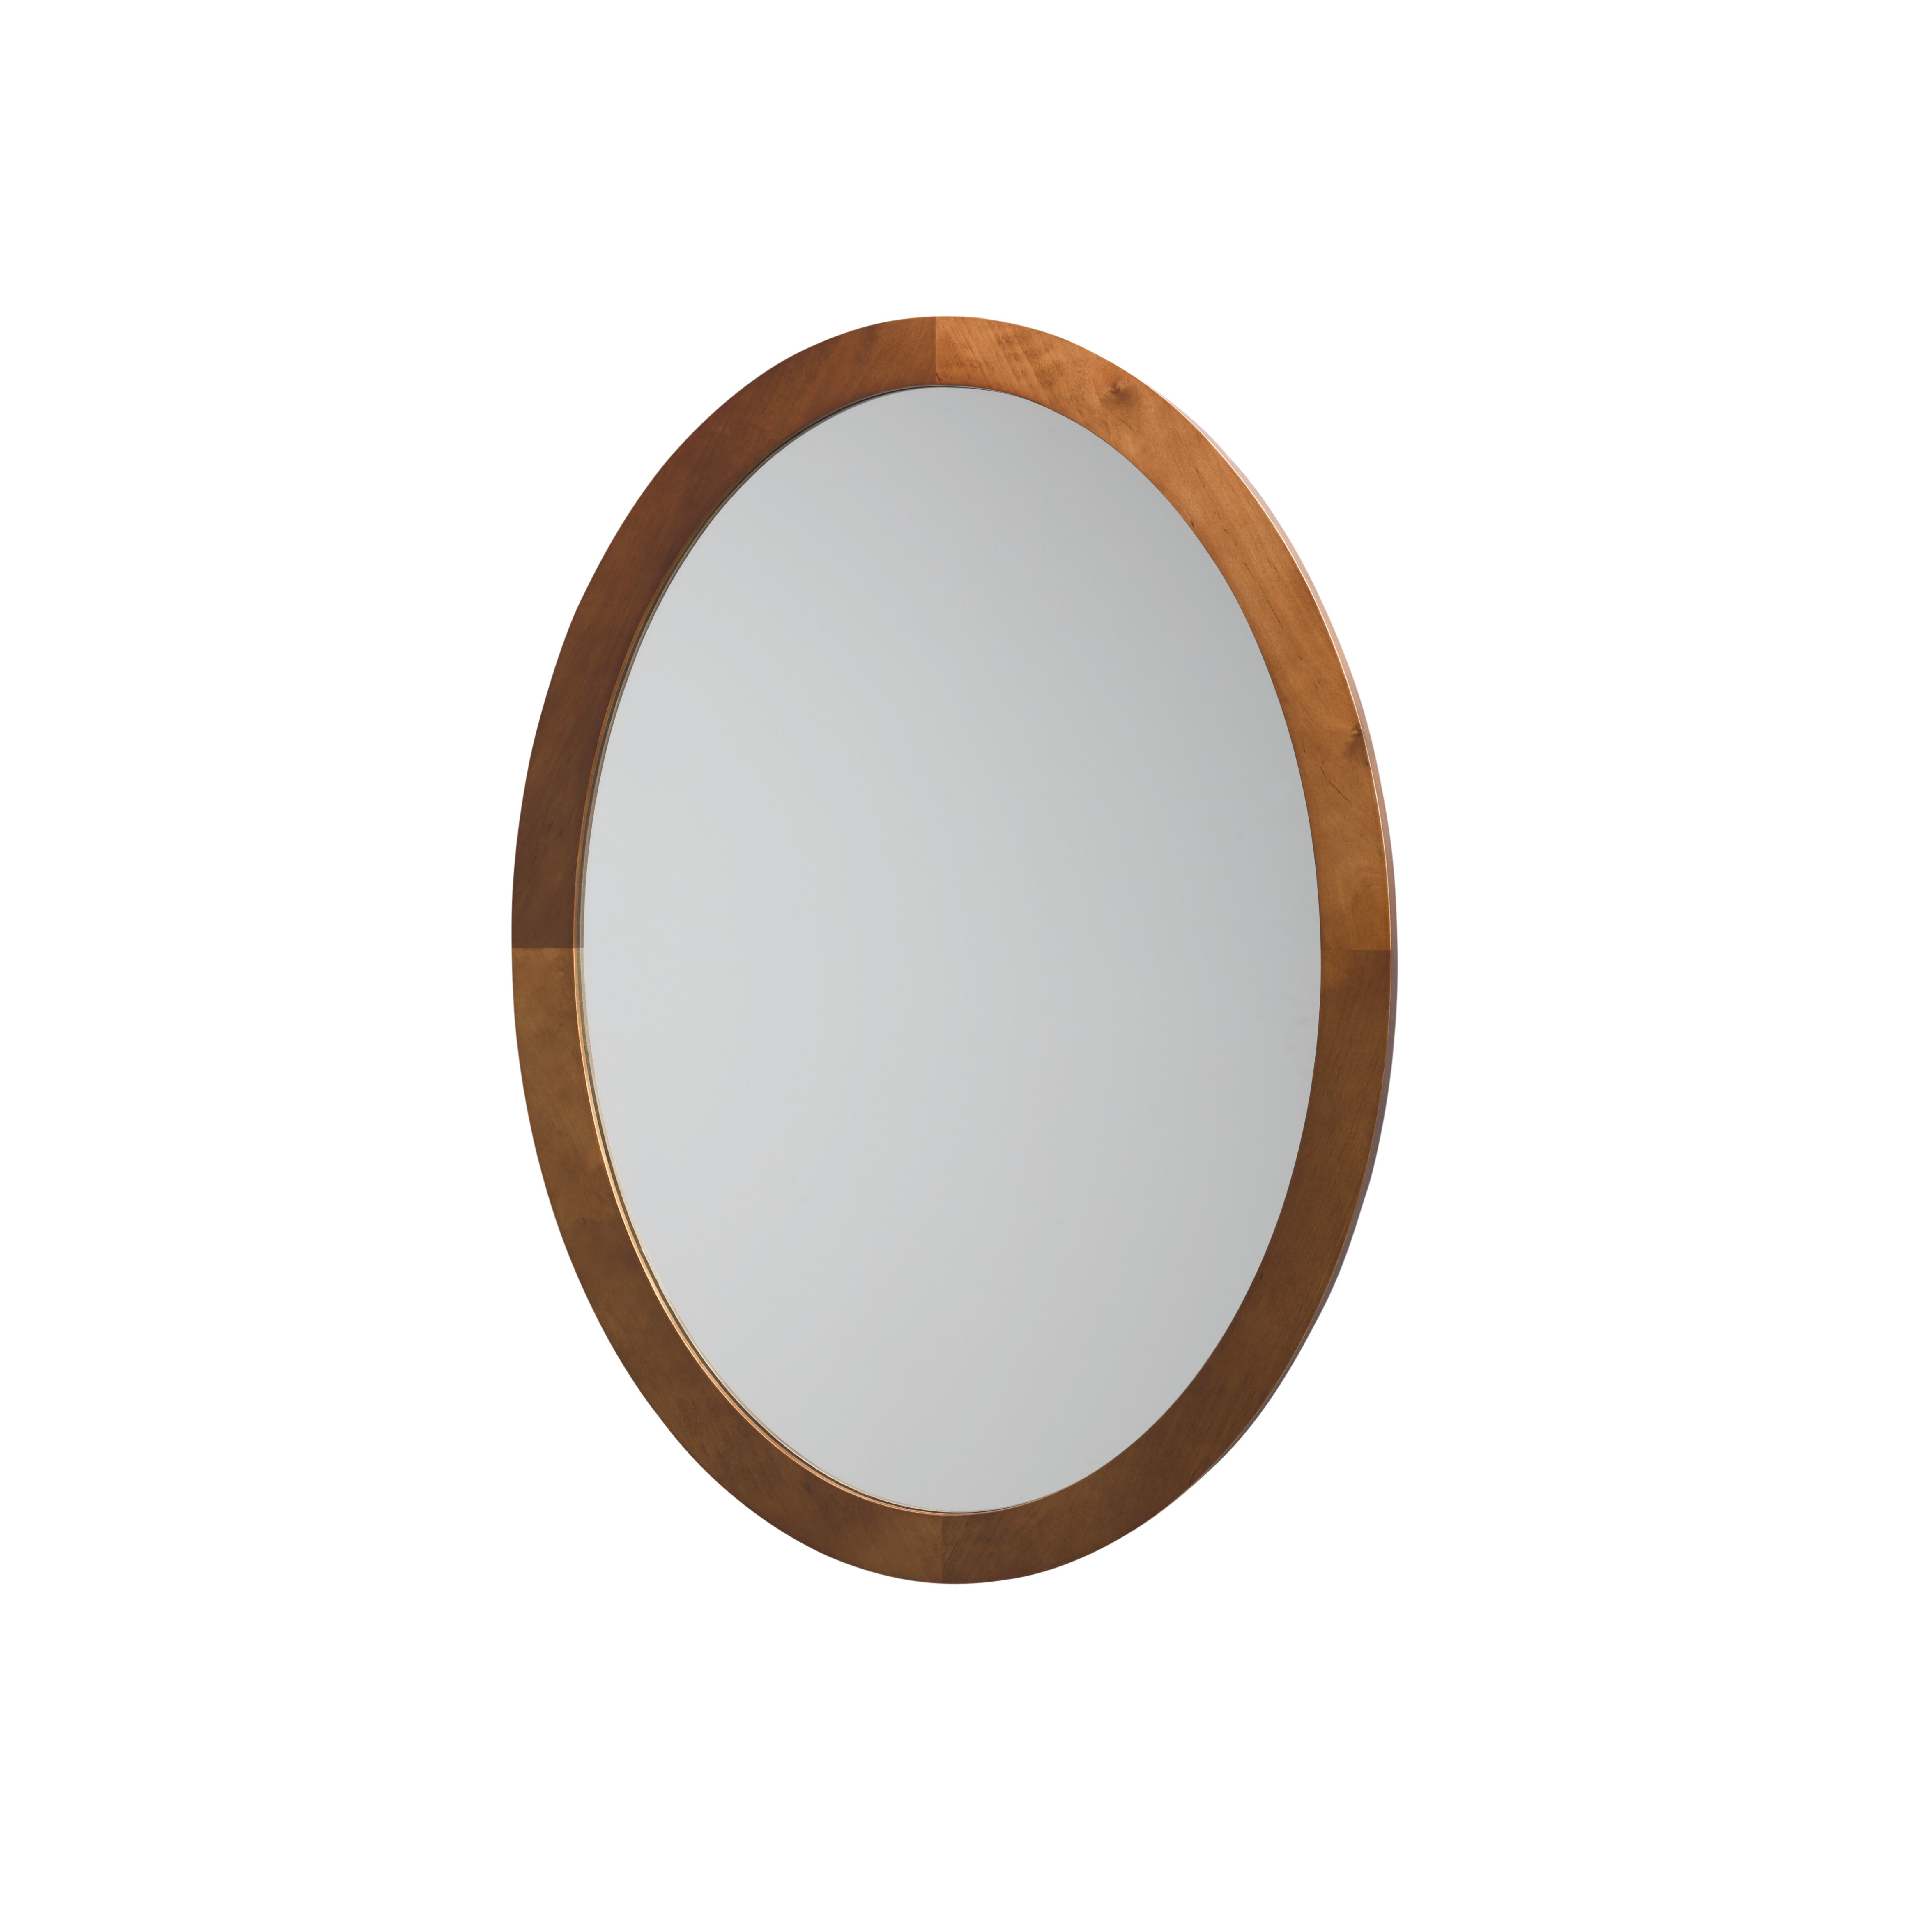 Ronbow oval wall mirror reviews wayfair for Oval wall mirror